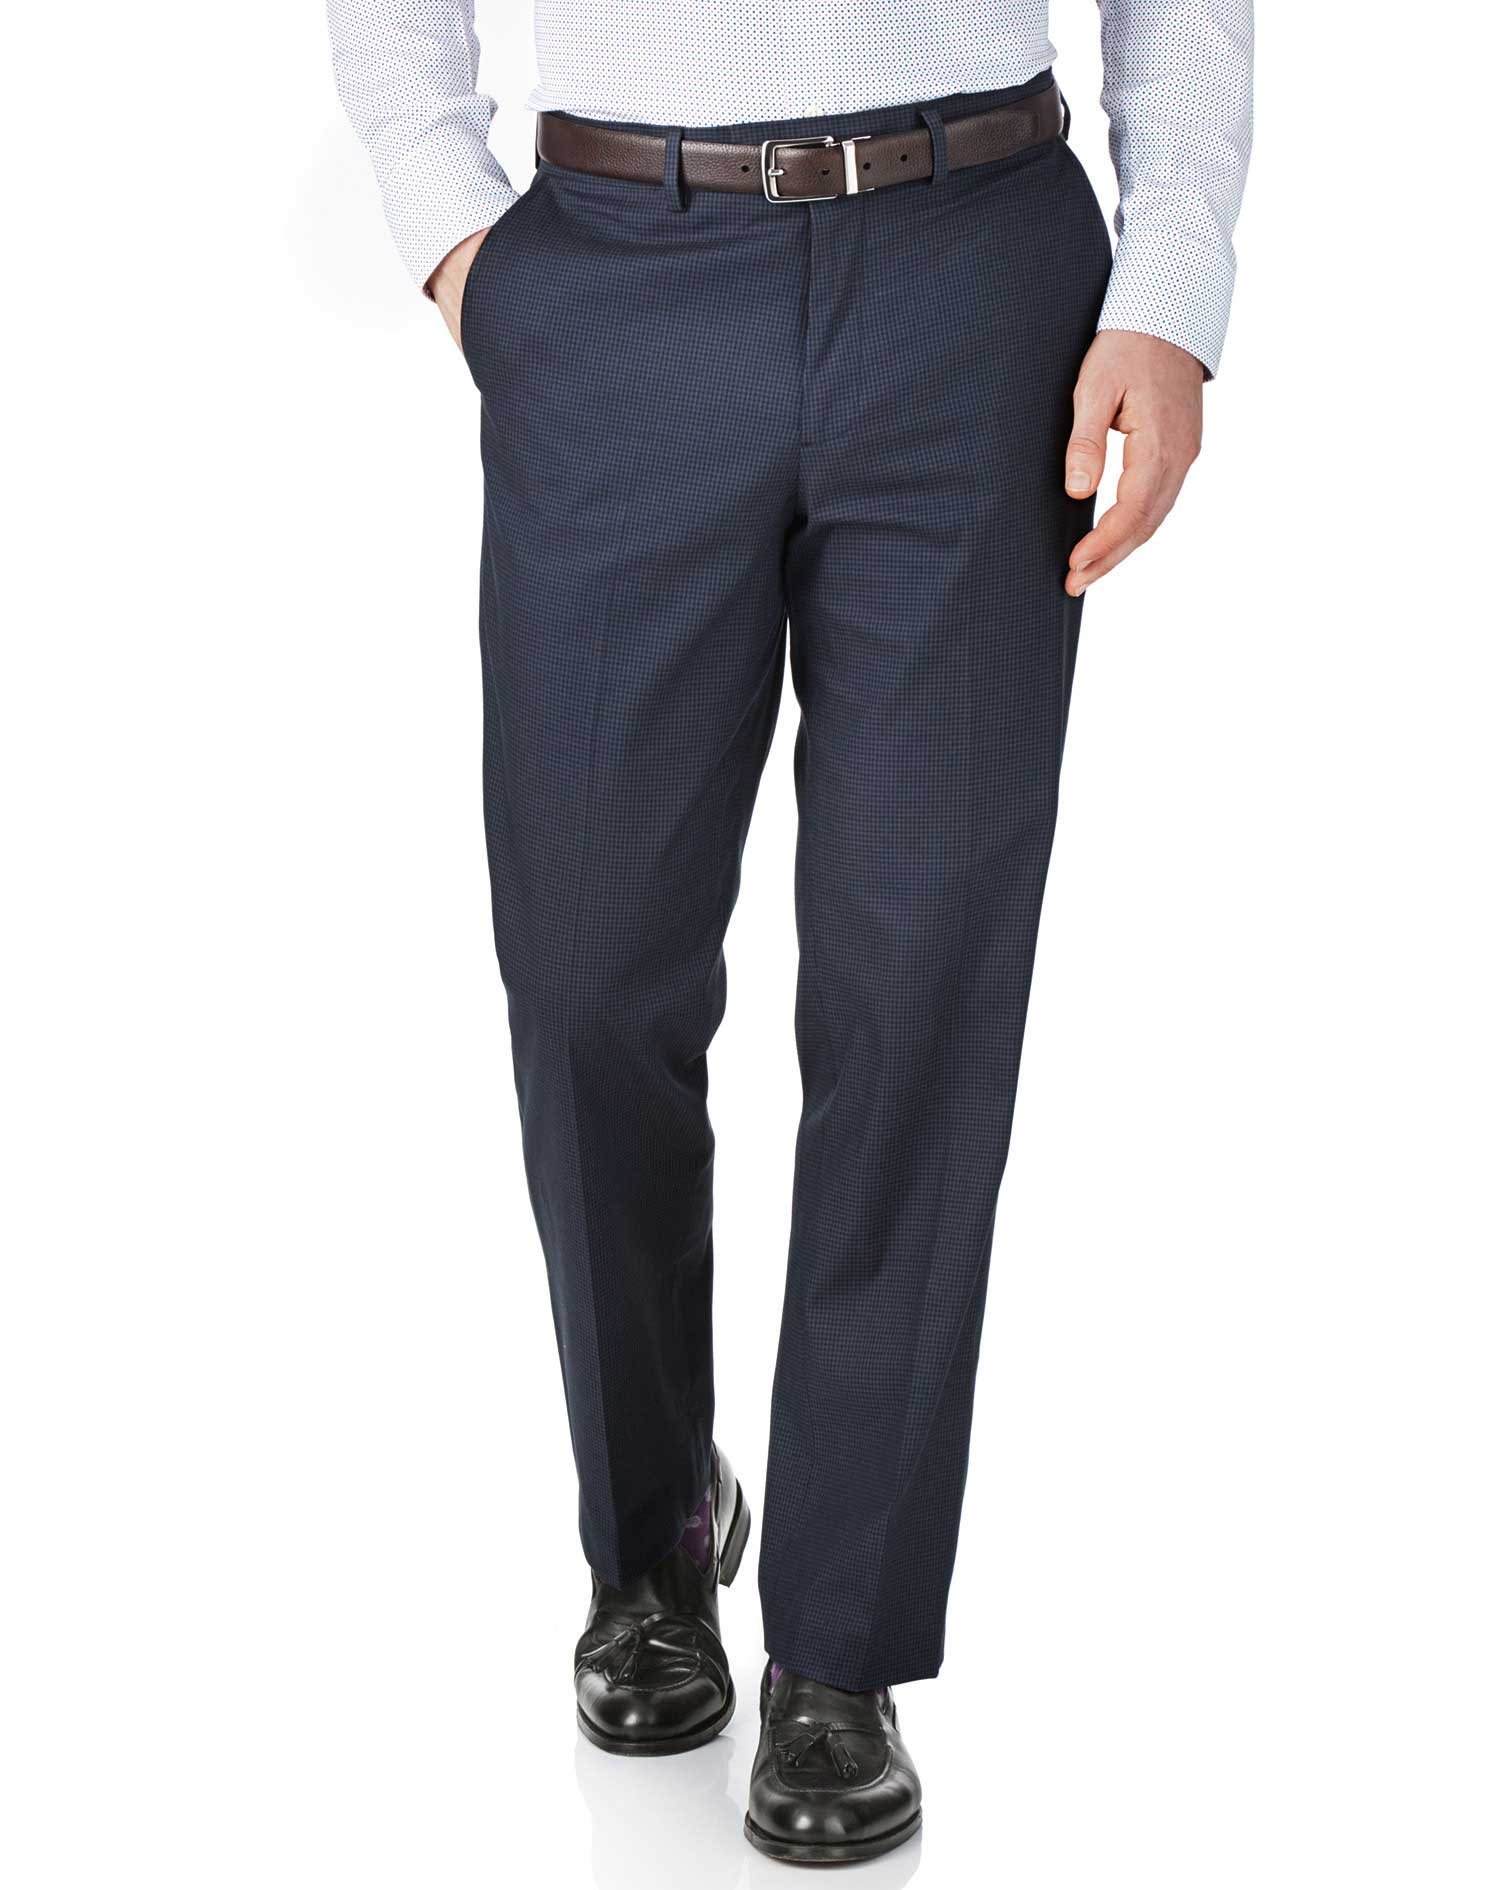 Navy and Blue Classic Fit Puppytooth Trousers Size W38 L30 by Charles Tyrwhitt